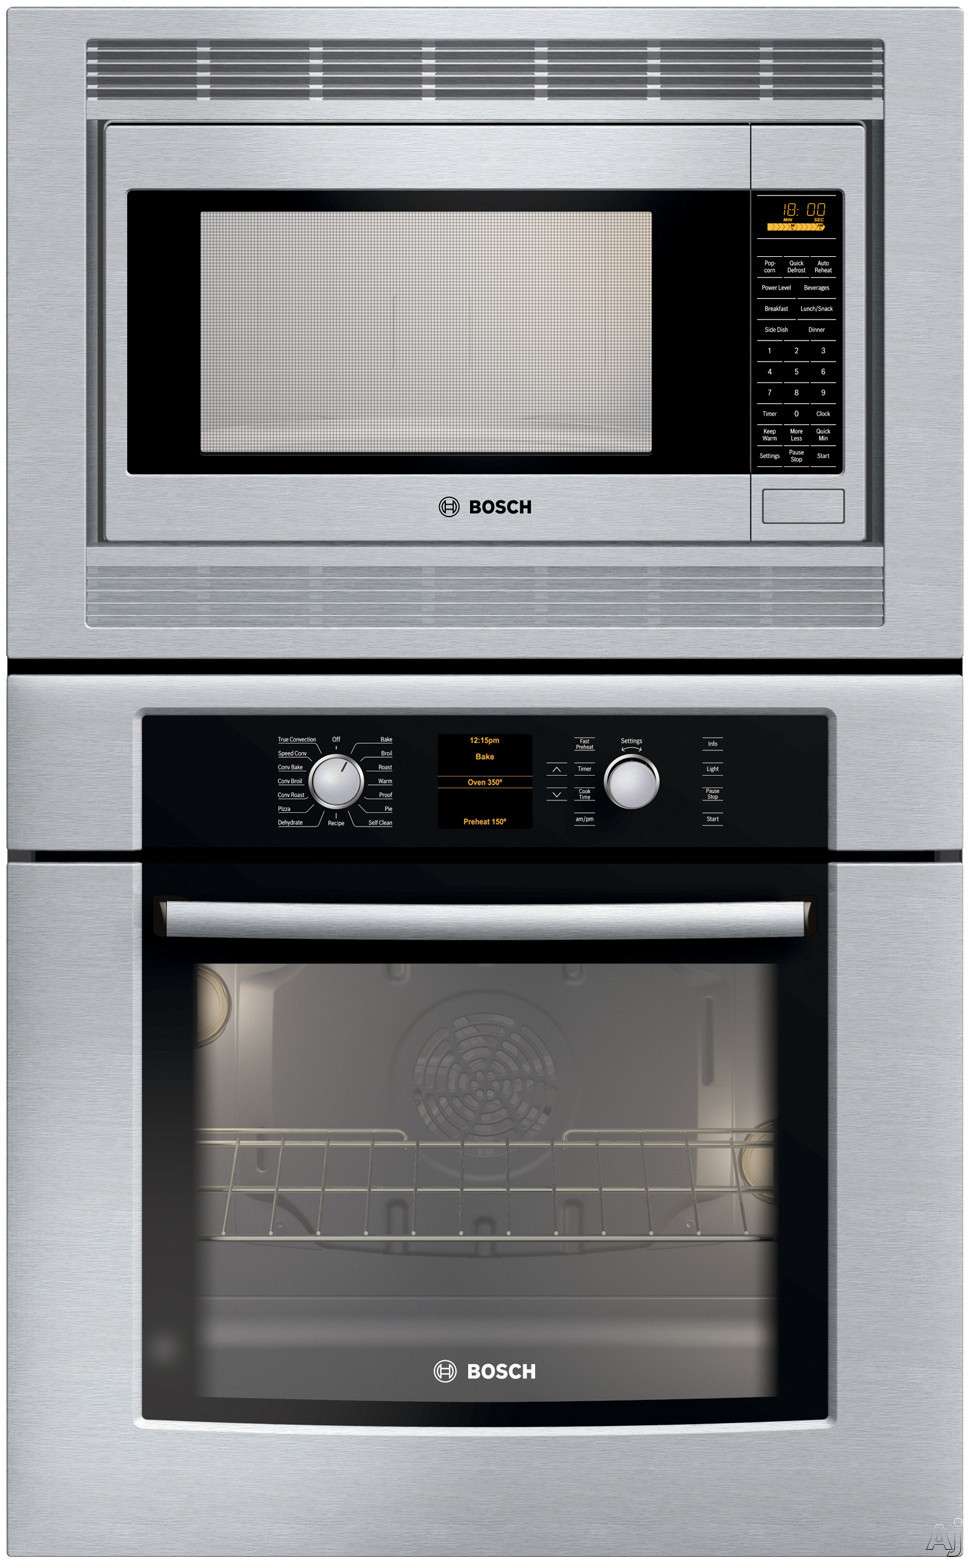 Bosch hbl5750uc 30 microwave combination wall oven with 1 200 microwave cooking watts genuine - Small space microwave photos ...